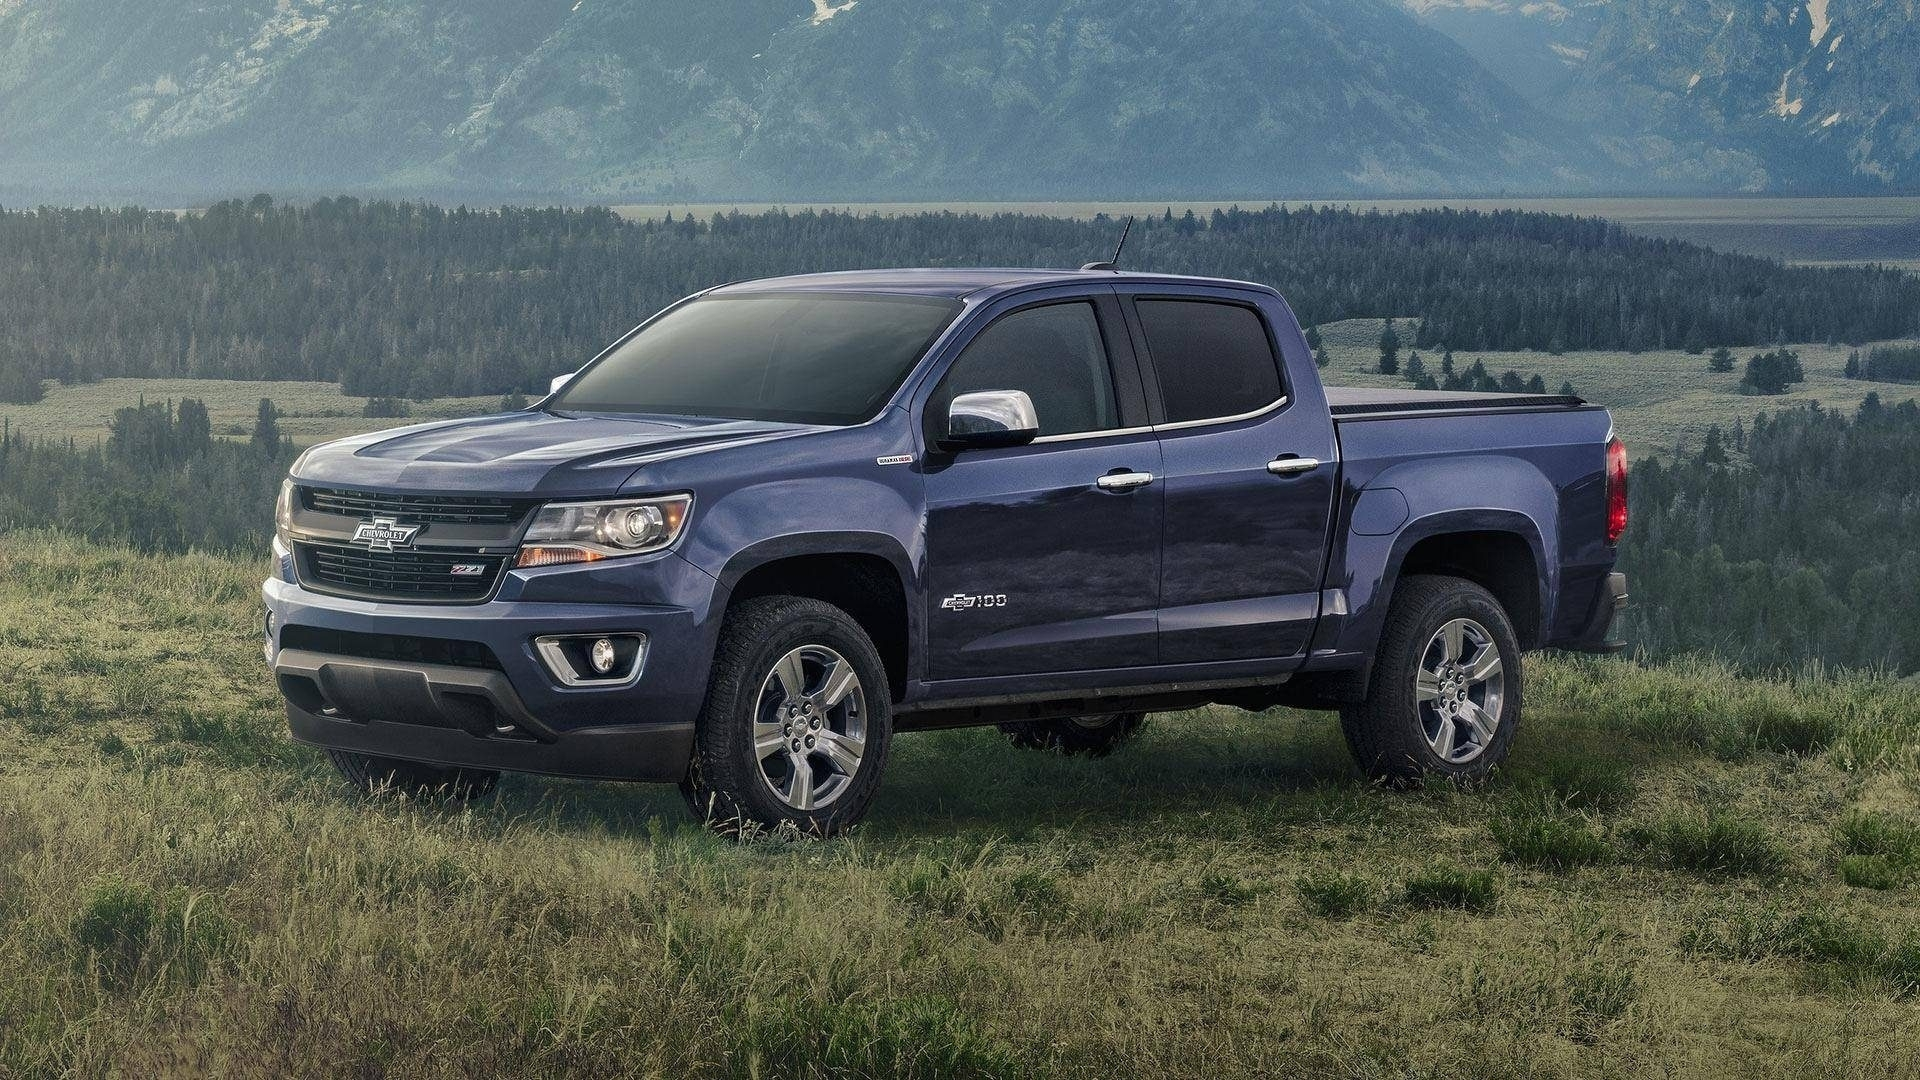 20 The Best 2019 Chevy Colorado Going Launched Soon First Drive